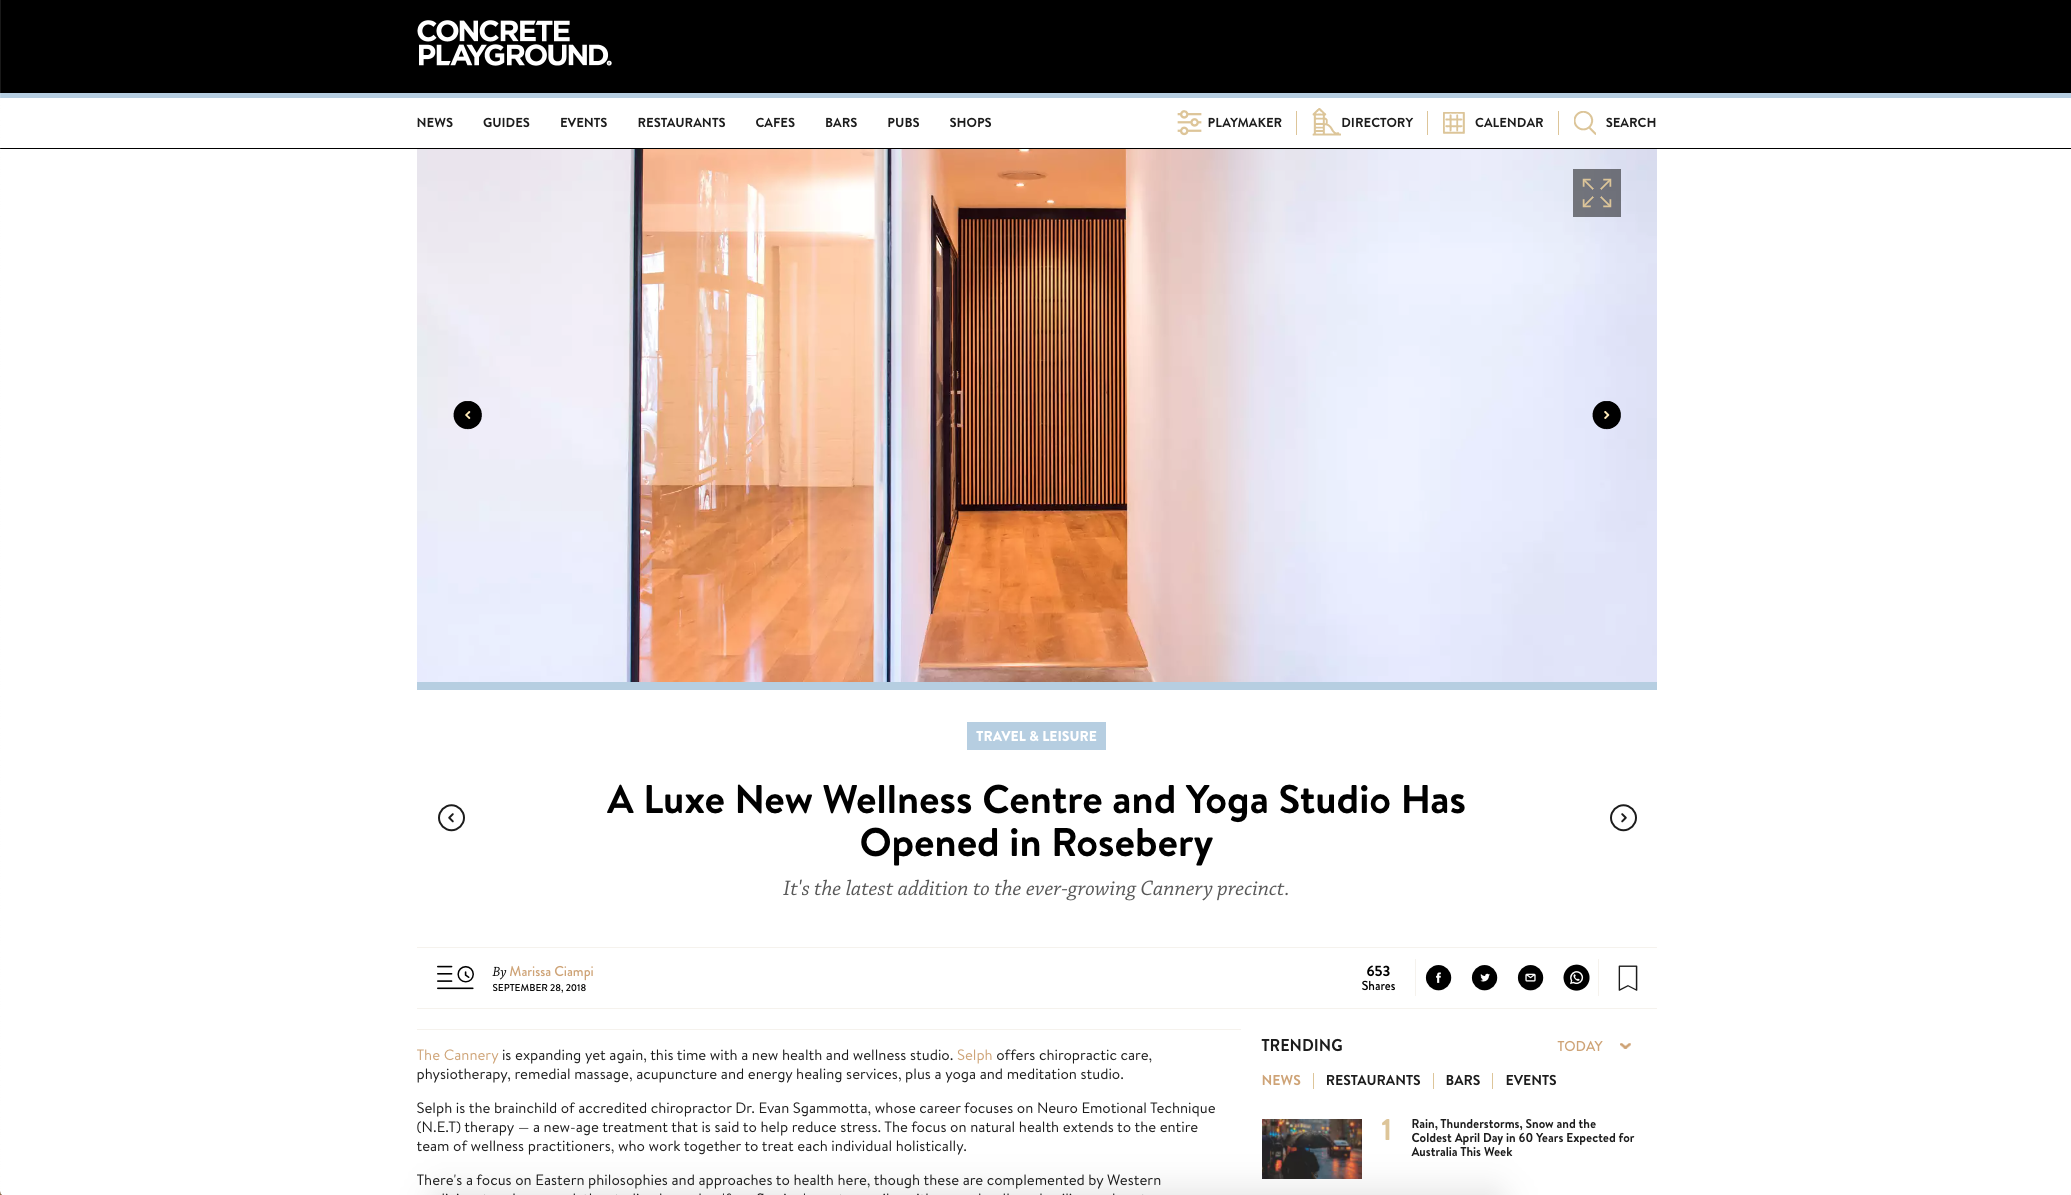 Concrete Playground - A luxe new wellness centre and yoga studio has opened in Rosebery - Selph Health Studios